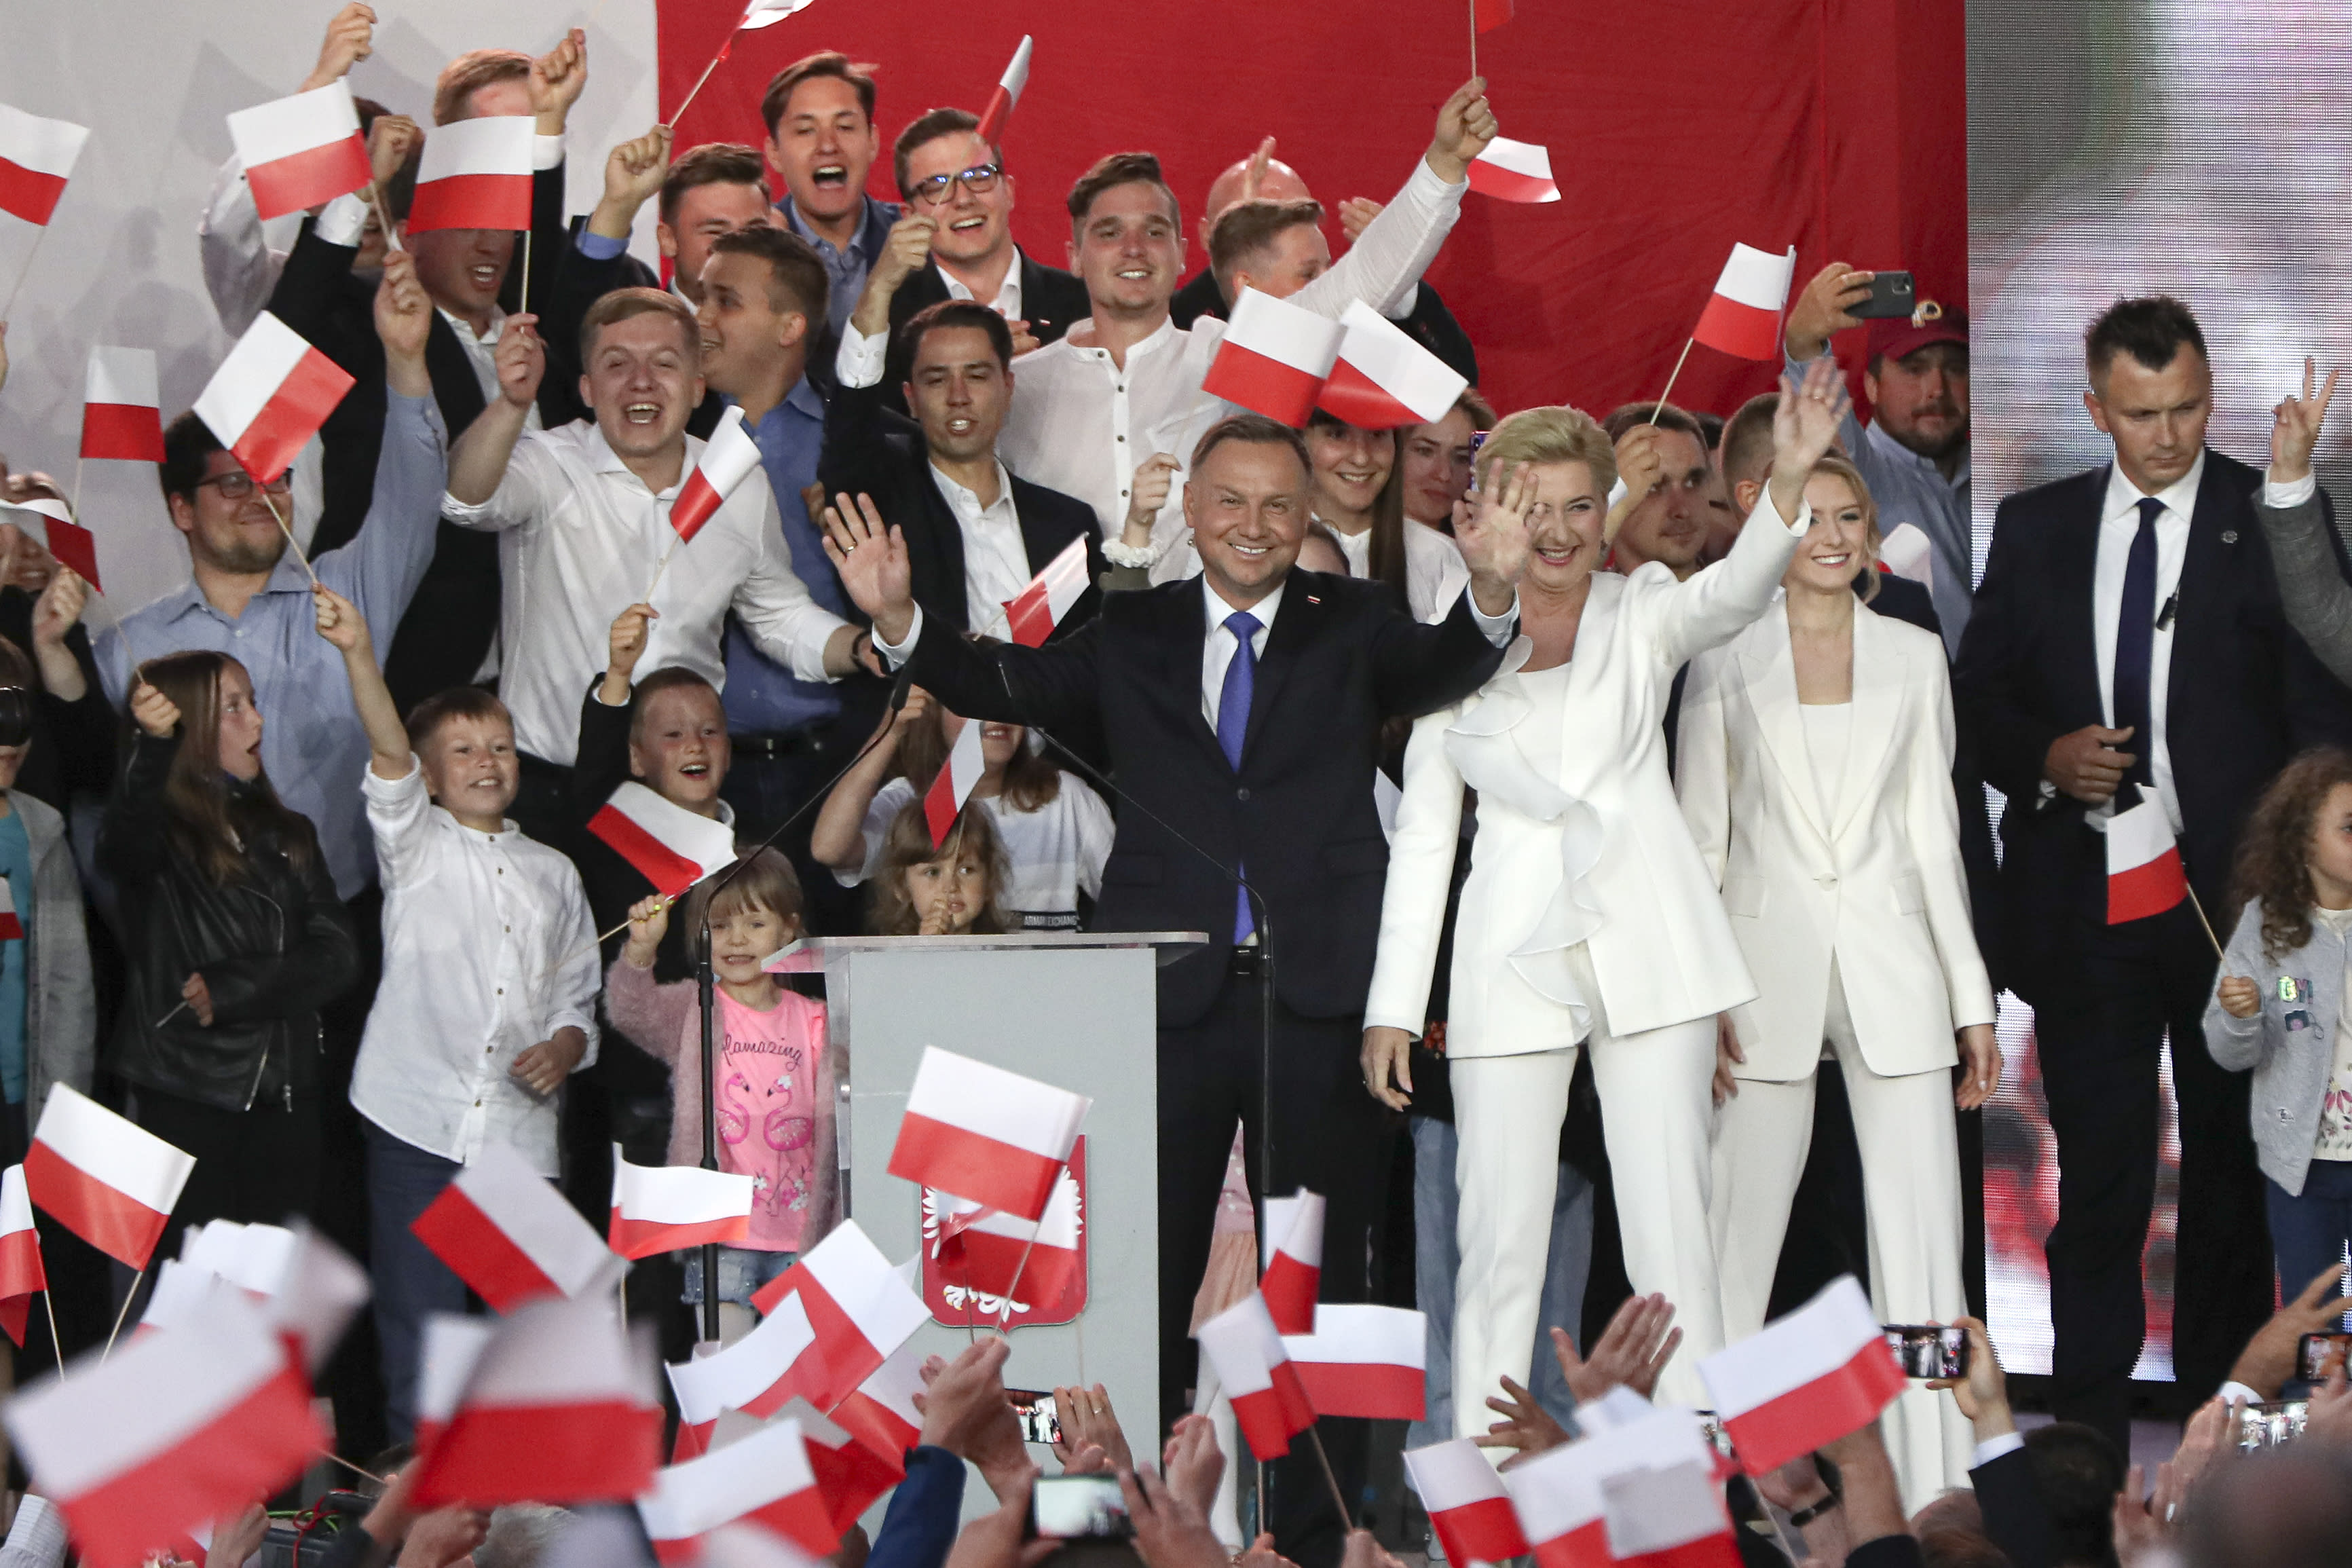 Incumbent President Andrzej Duda, left, and his wife Agata Kornhauser-Duda wave to supporters in Pultusk, Poland, Sunday, July 12, 2020. Conservative Duda ran against liberal Warsaw Mayor Rafal Trzaskowski in a razor-blade-close presidential election runoff and exit poll shows election is too close to call. (AP Photo/Czarek Sokolowski)